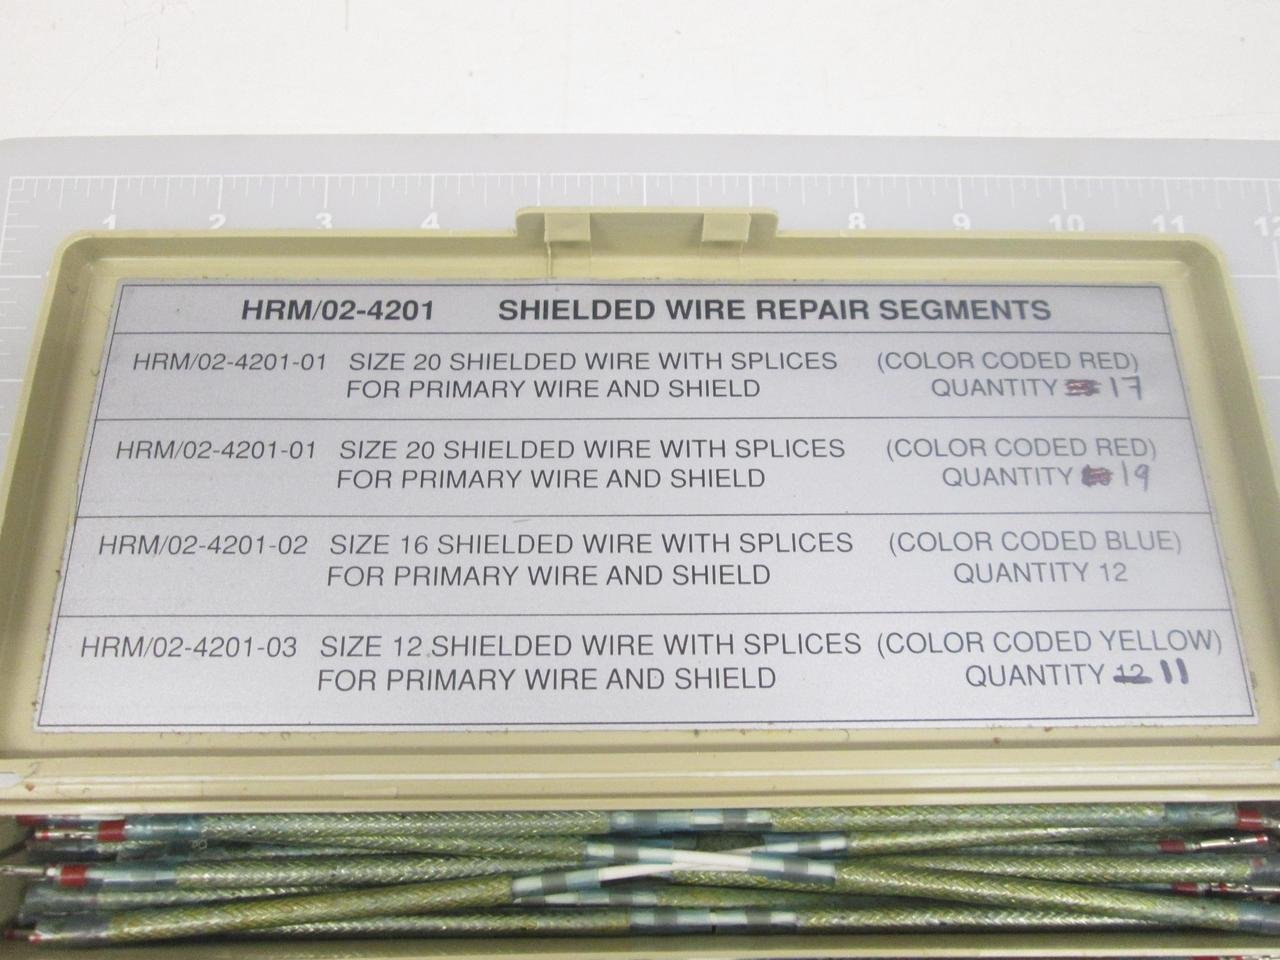 HRM/02-4201, 5841-01-269-2220 Shielded Wire Repair Segments Sizes ...